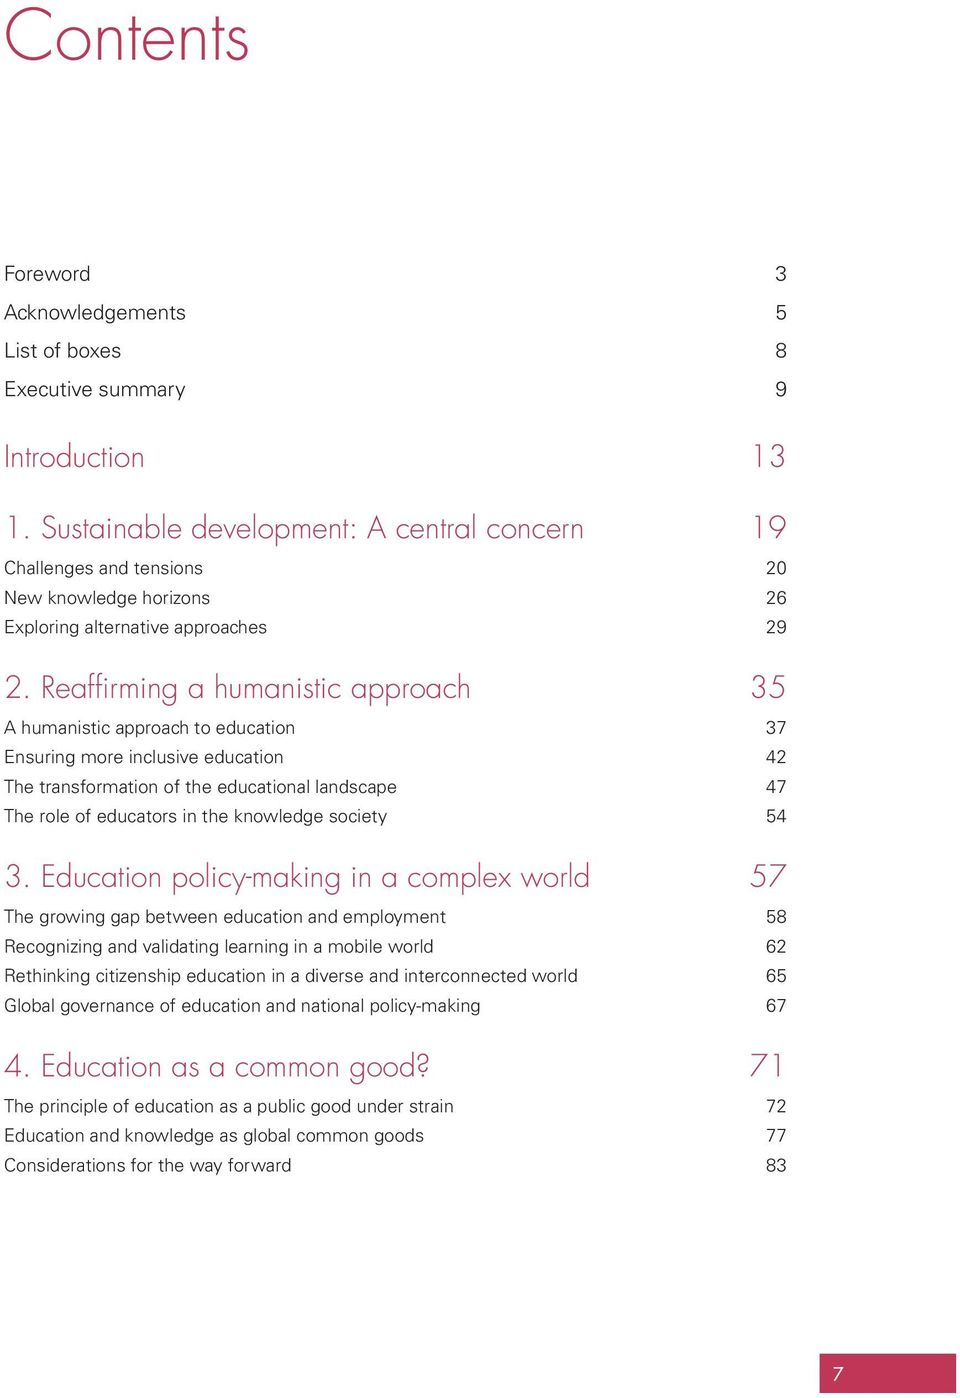 Reaffirming a humanistic approach 35 A humanistic approach to education 37 Ensuring more inclusive education 42 The transformation of the educational landscape 47 The role of educators in the